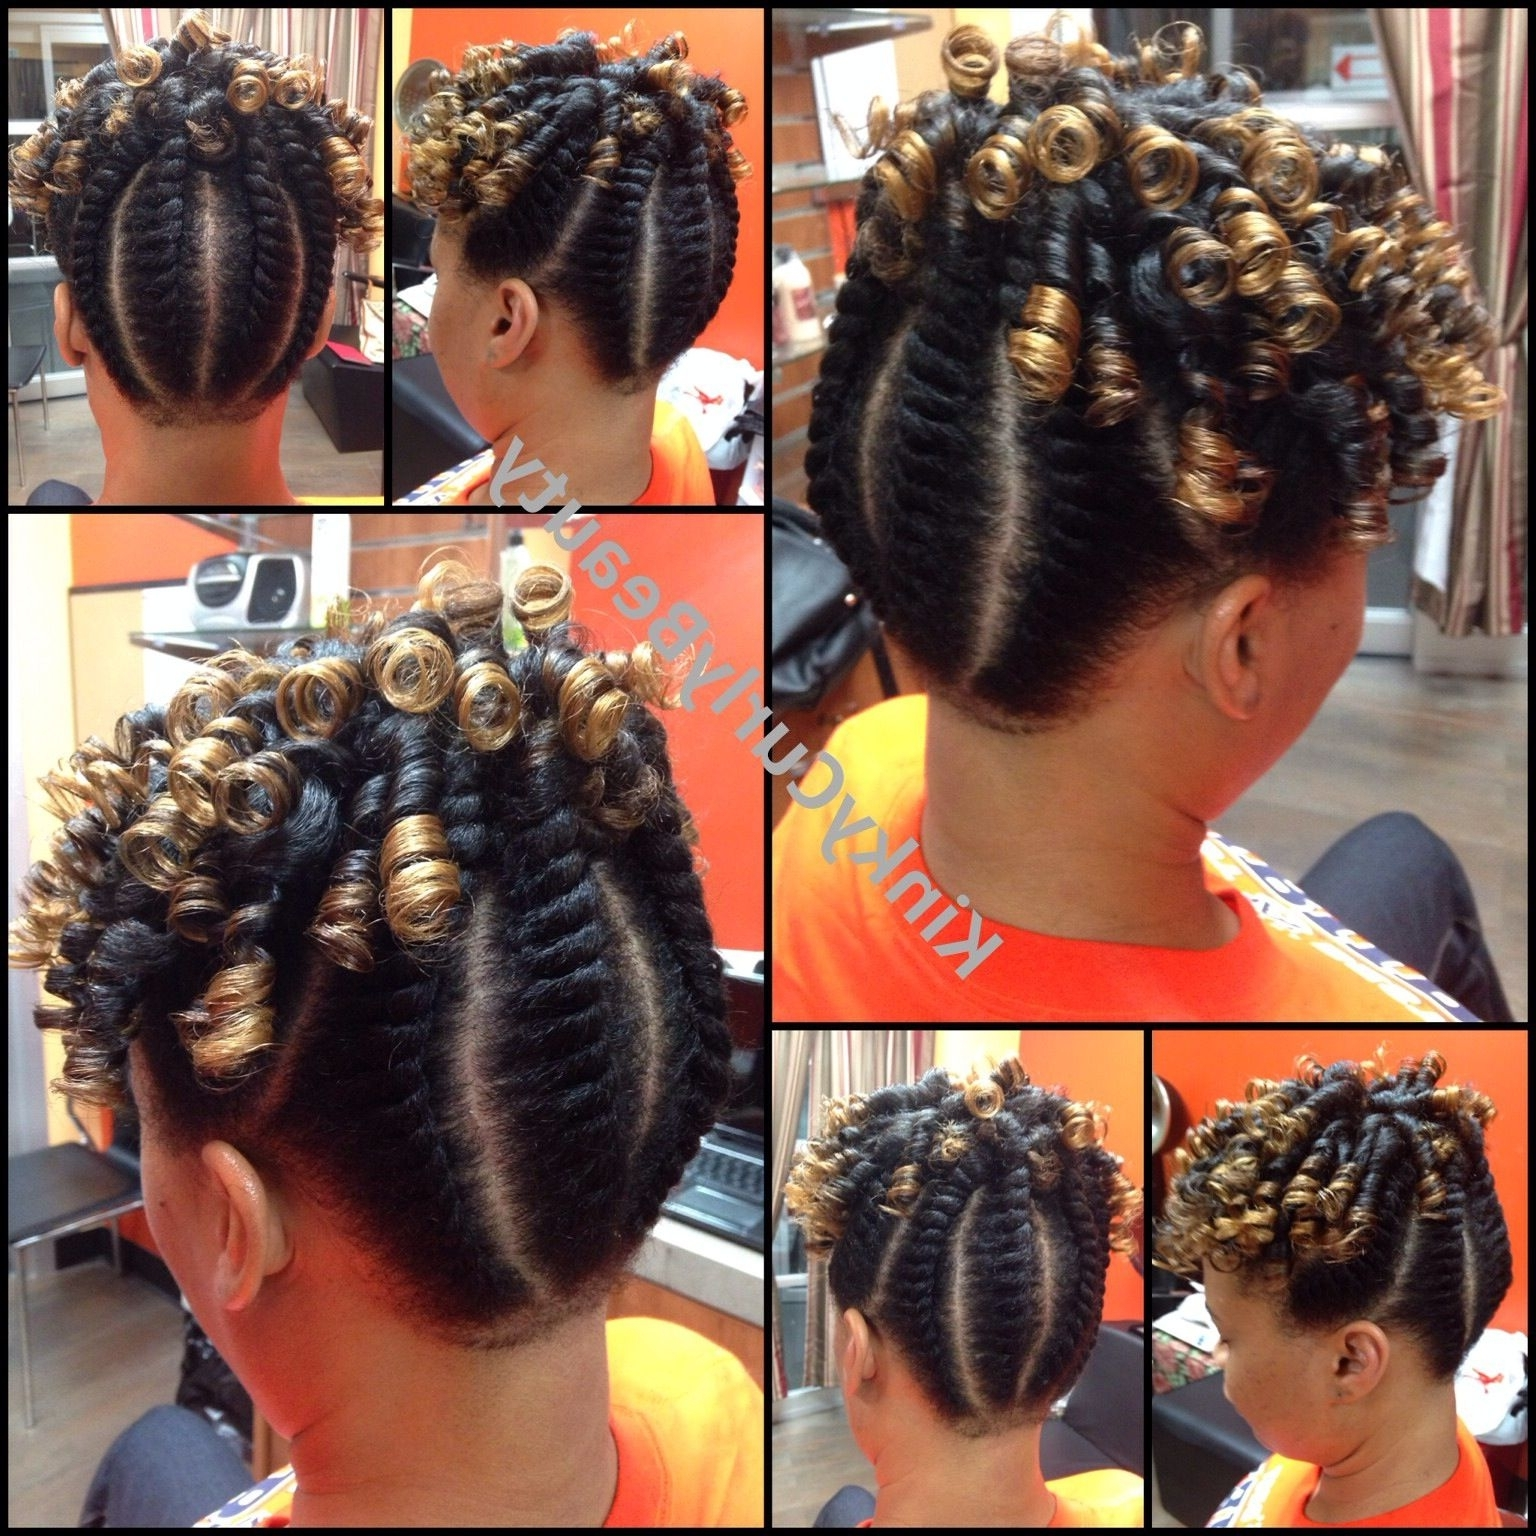 Fashionable Reverse Flat Twists Hairstyles With Dry Flat Twists And Rodsone Of My Signature Updo's (View 3 of 15)